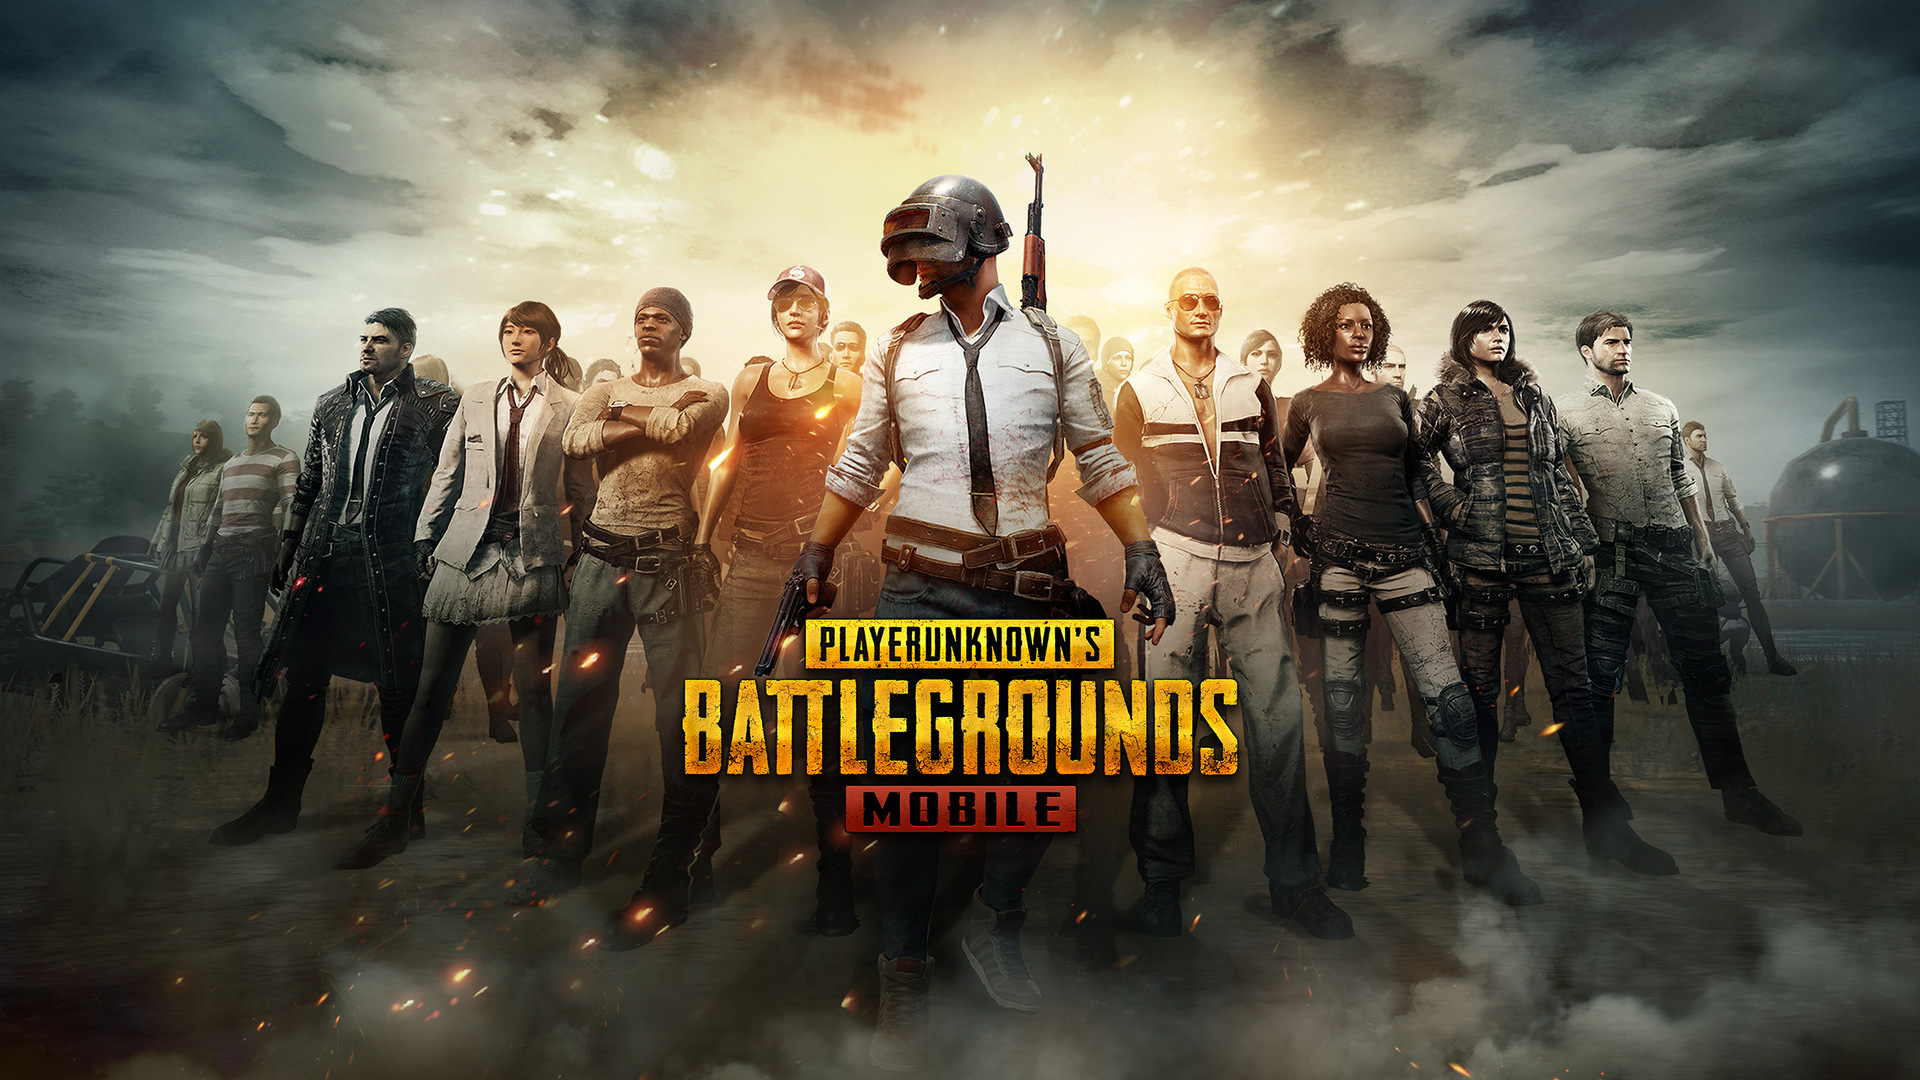 Pubg Mobile Wallpapers For Phone: 1920x1080 Pubg Mobile Laptop Full HD 1080P HD 4k